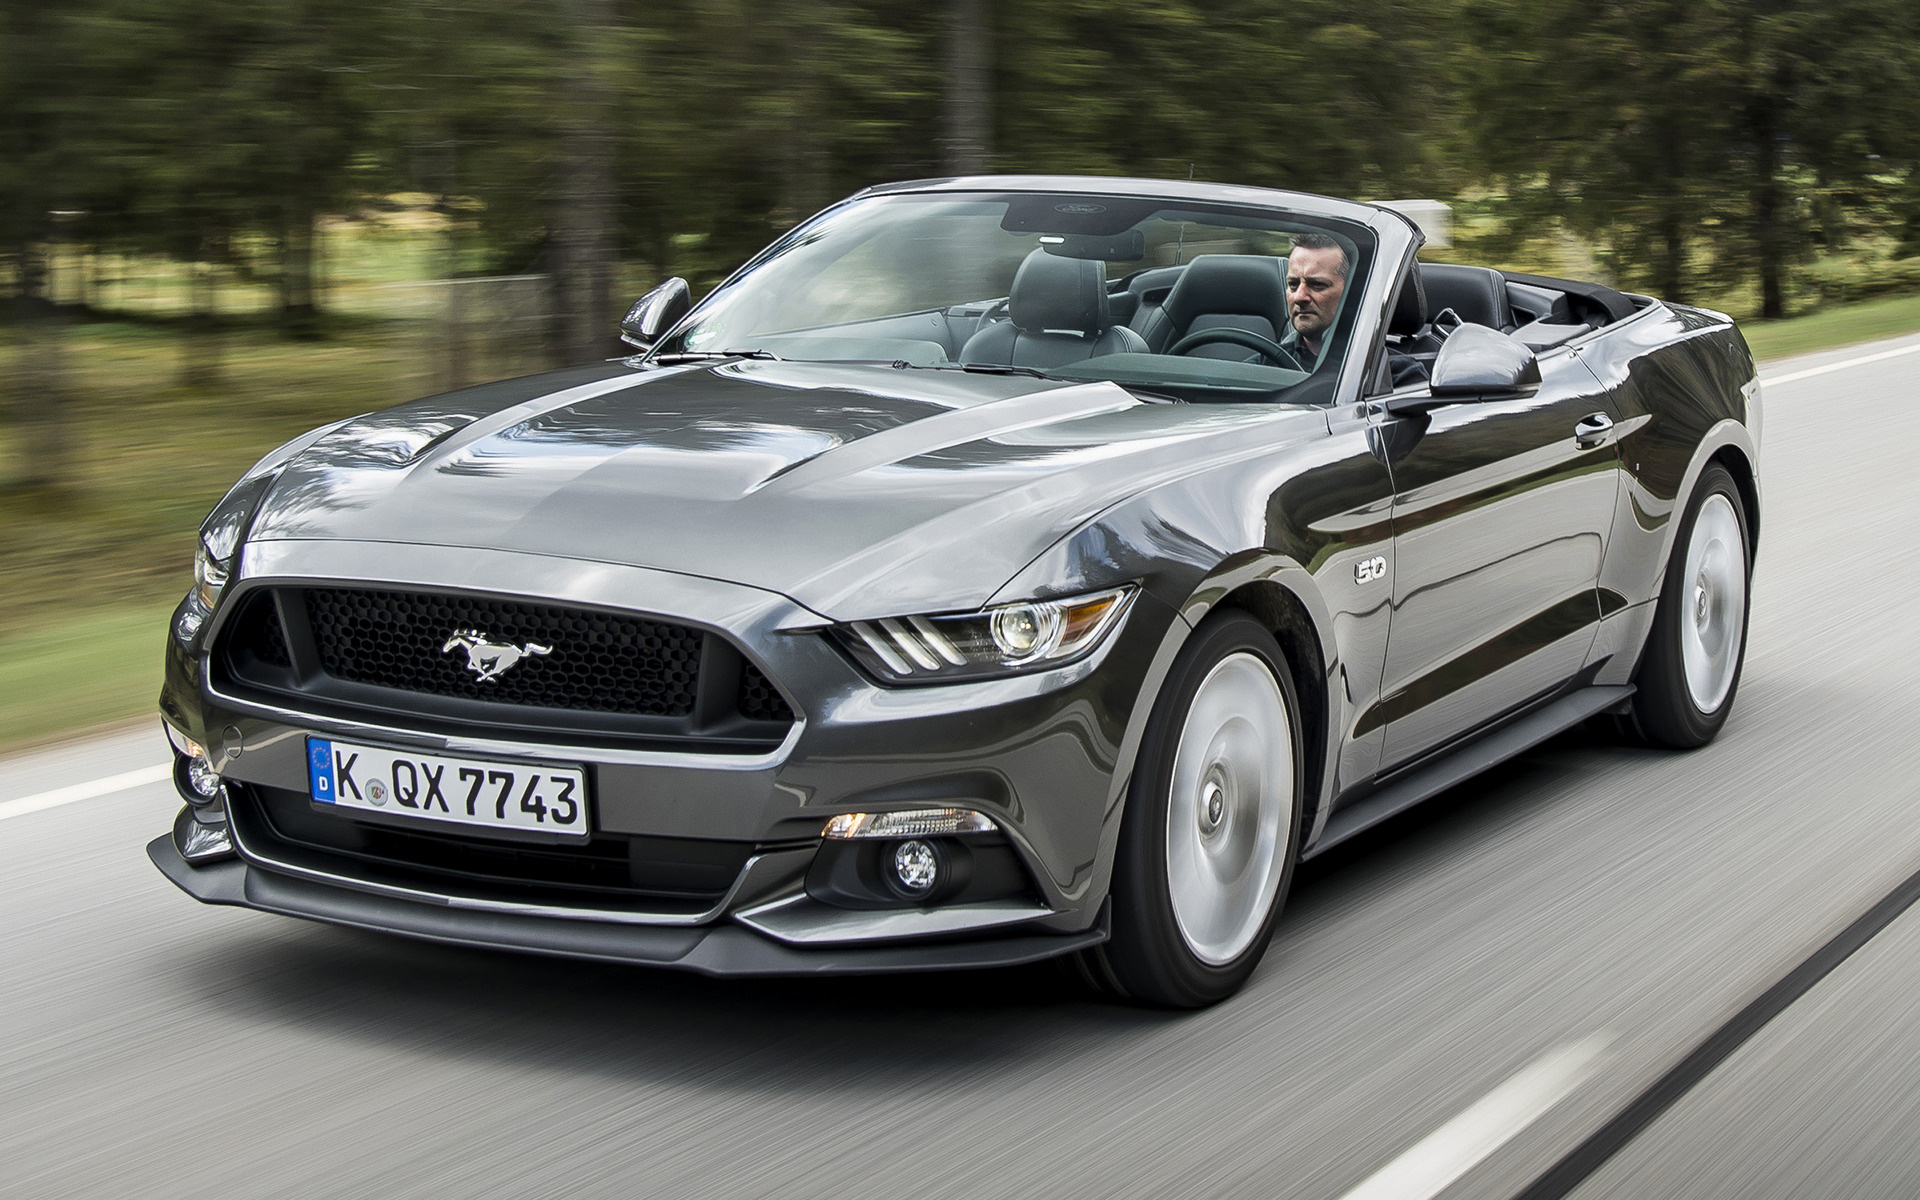 Ford Mustang GT Convertible (2015) EU Wallpapers and HD Images - Car ...